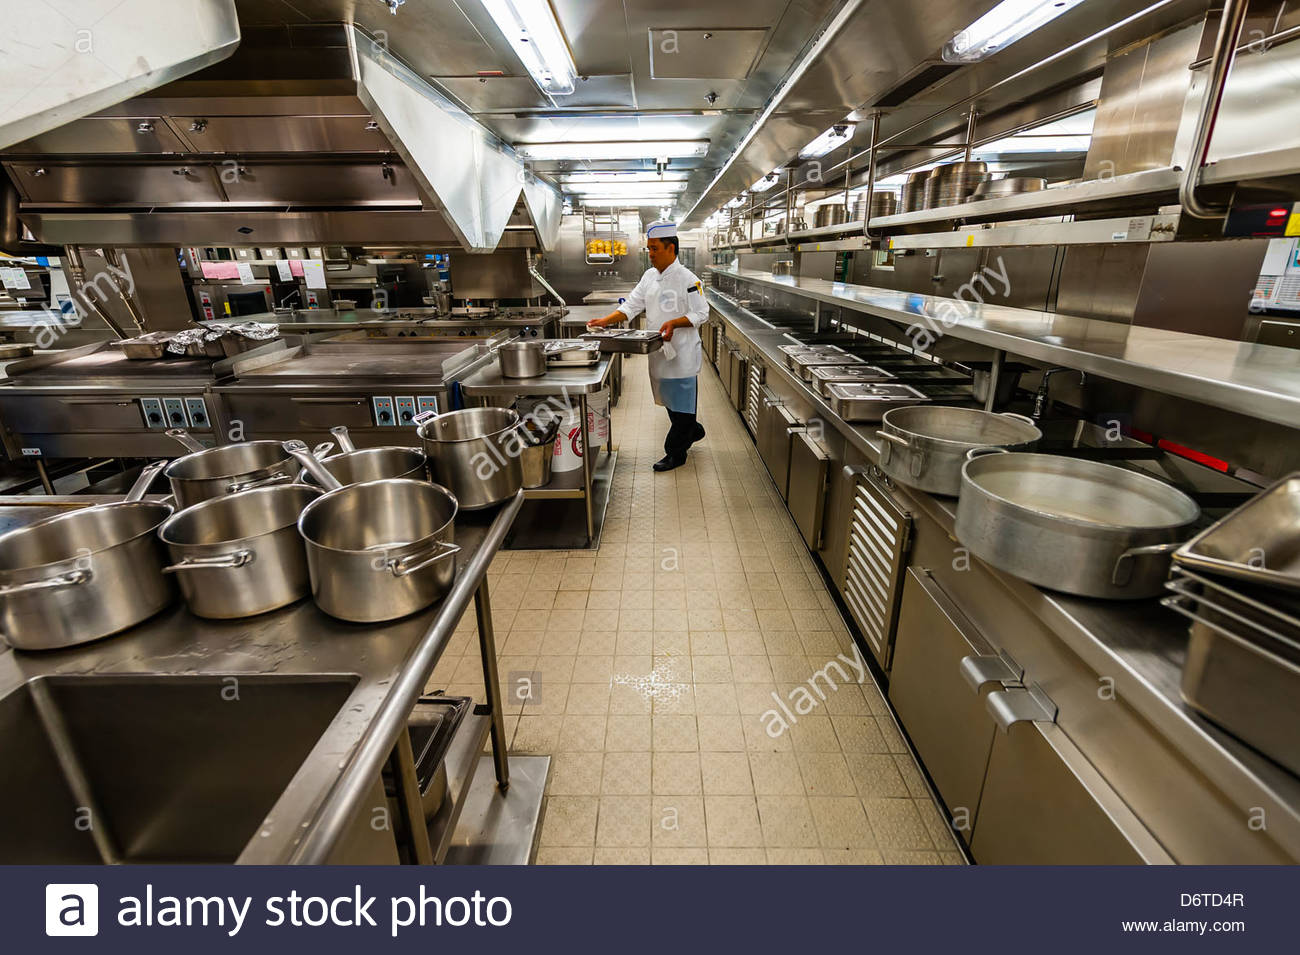 Galley Kitchen Of The Disney Dream Disney Cruise Lines Sailing - Cruise ship kitchen